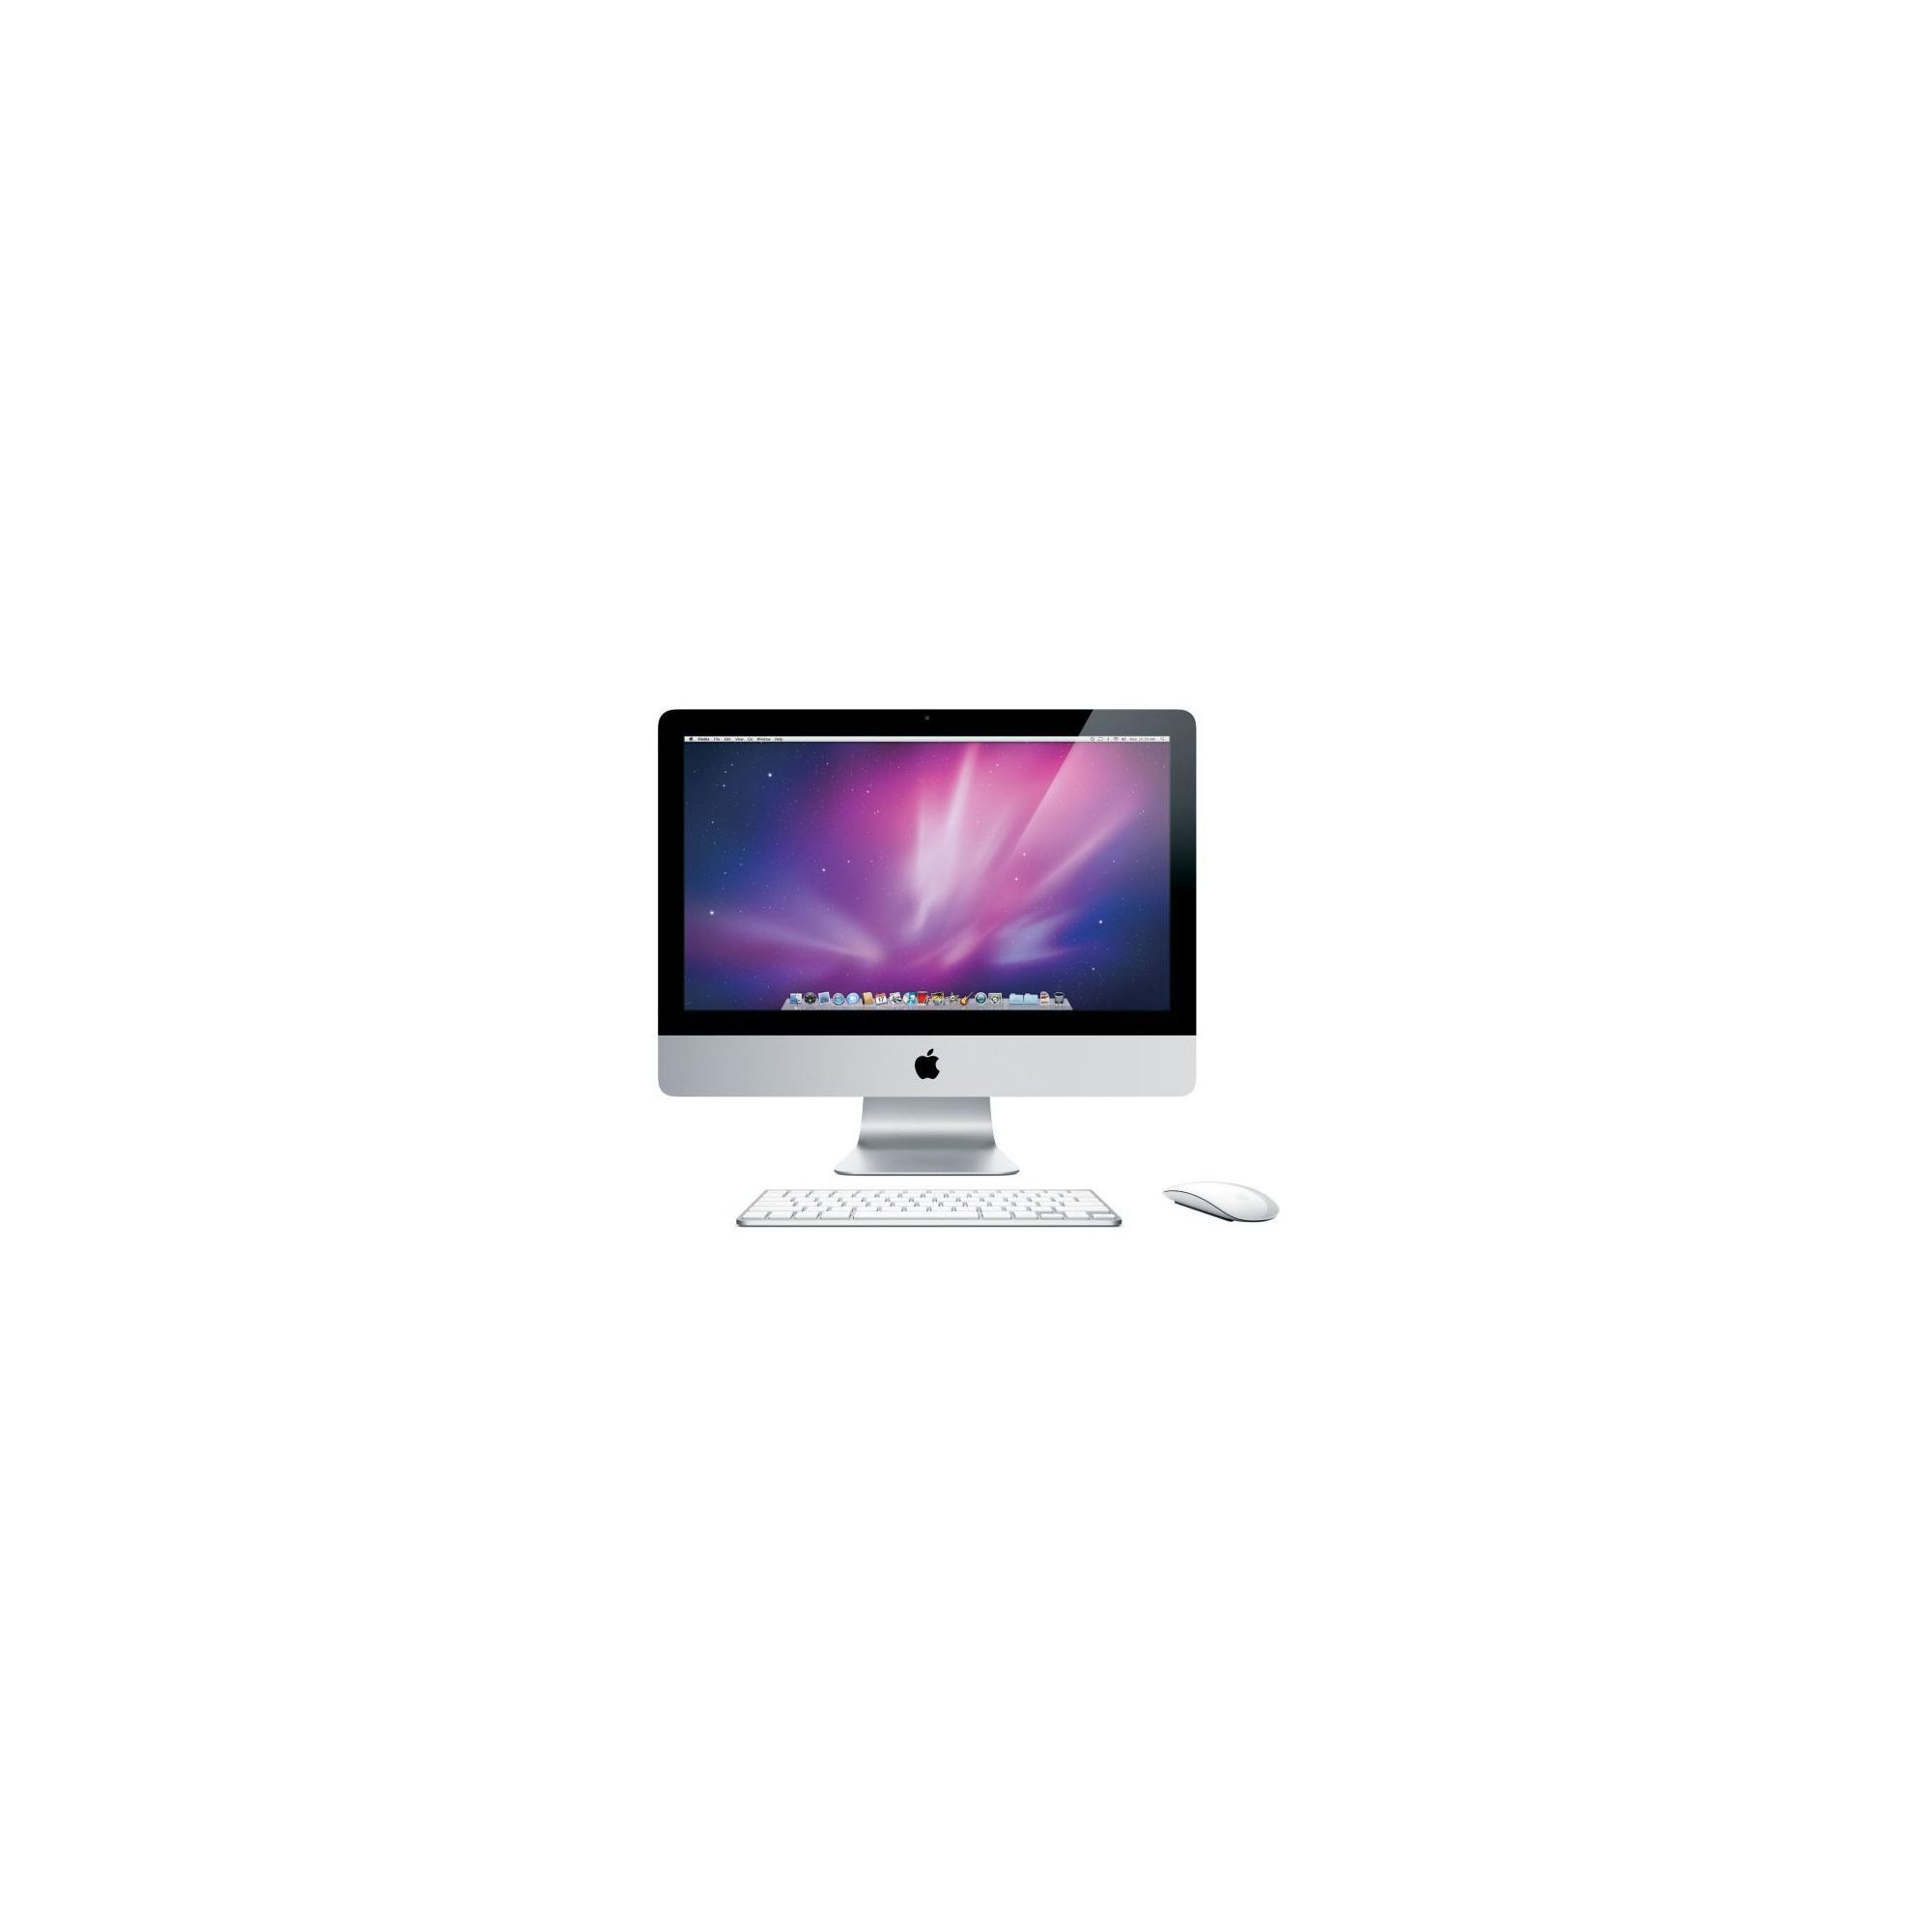 Apple iMac (27. 0 inch) All-in-One PC at Tesco Direct